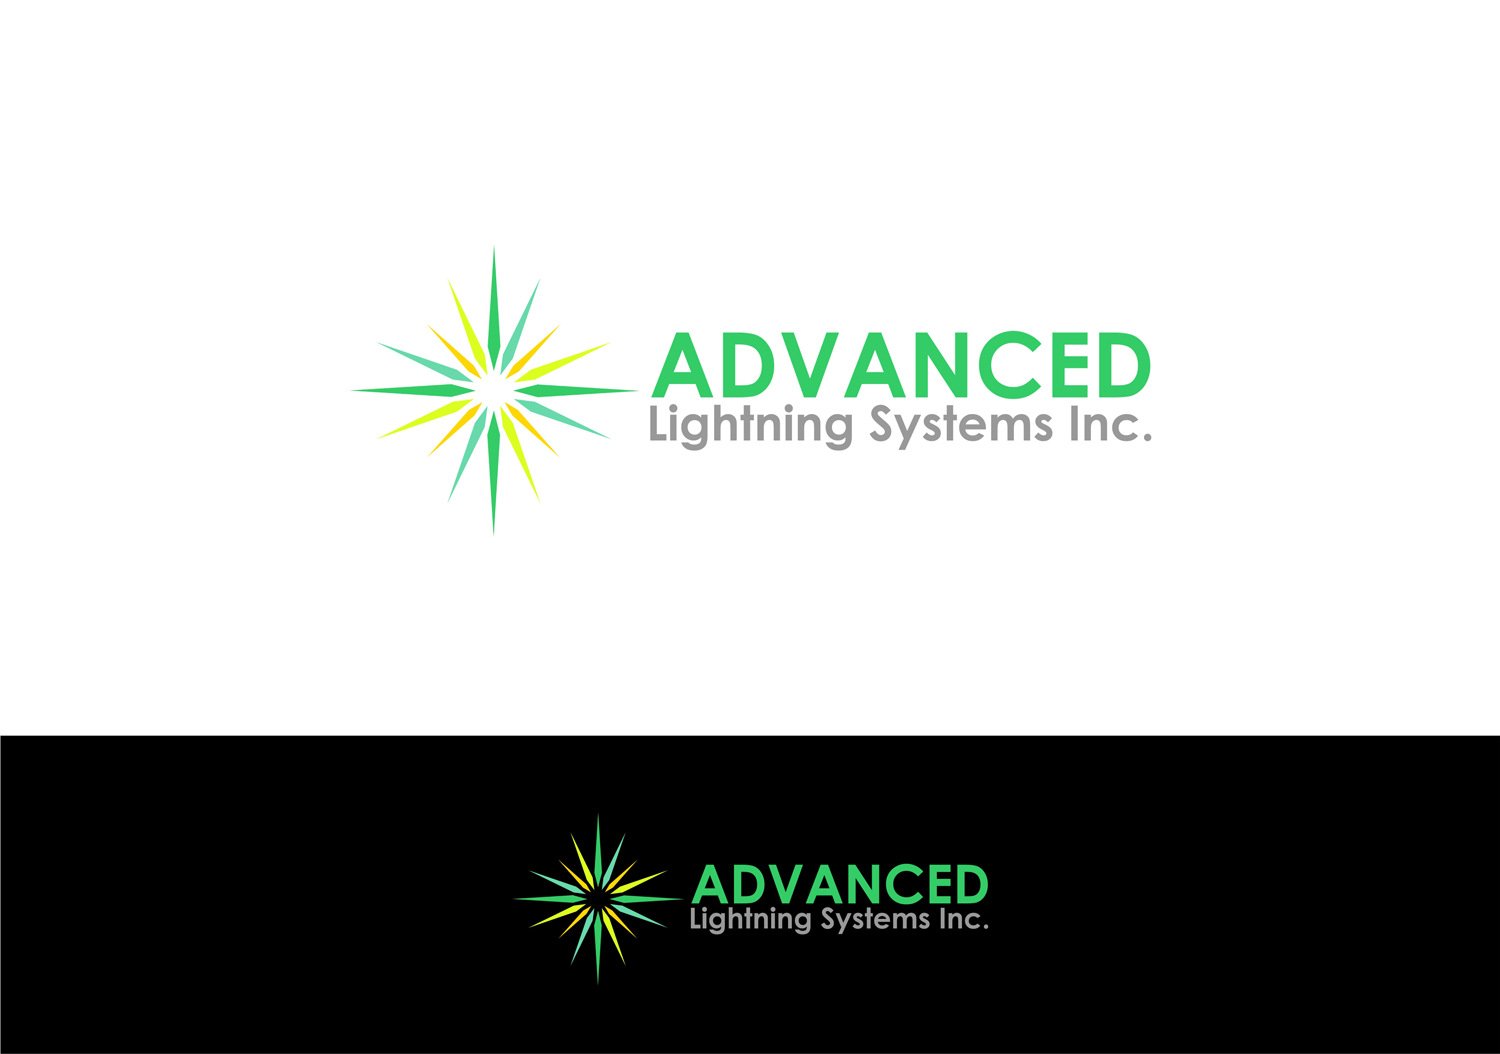 Altair Lighting Website Lighting Design Company - Lilianduval